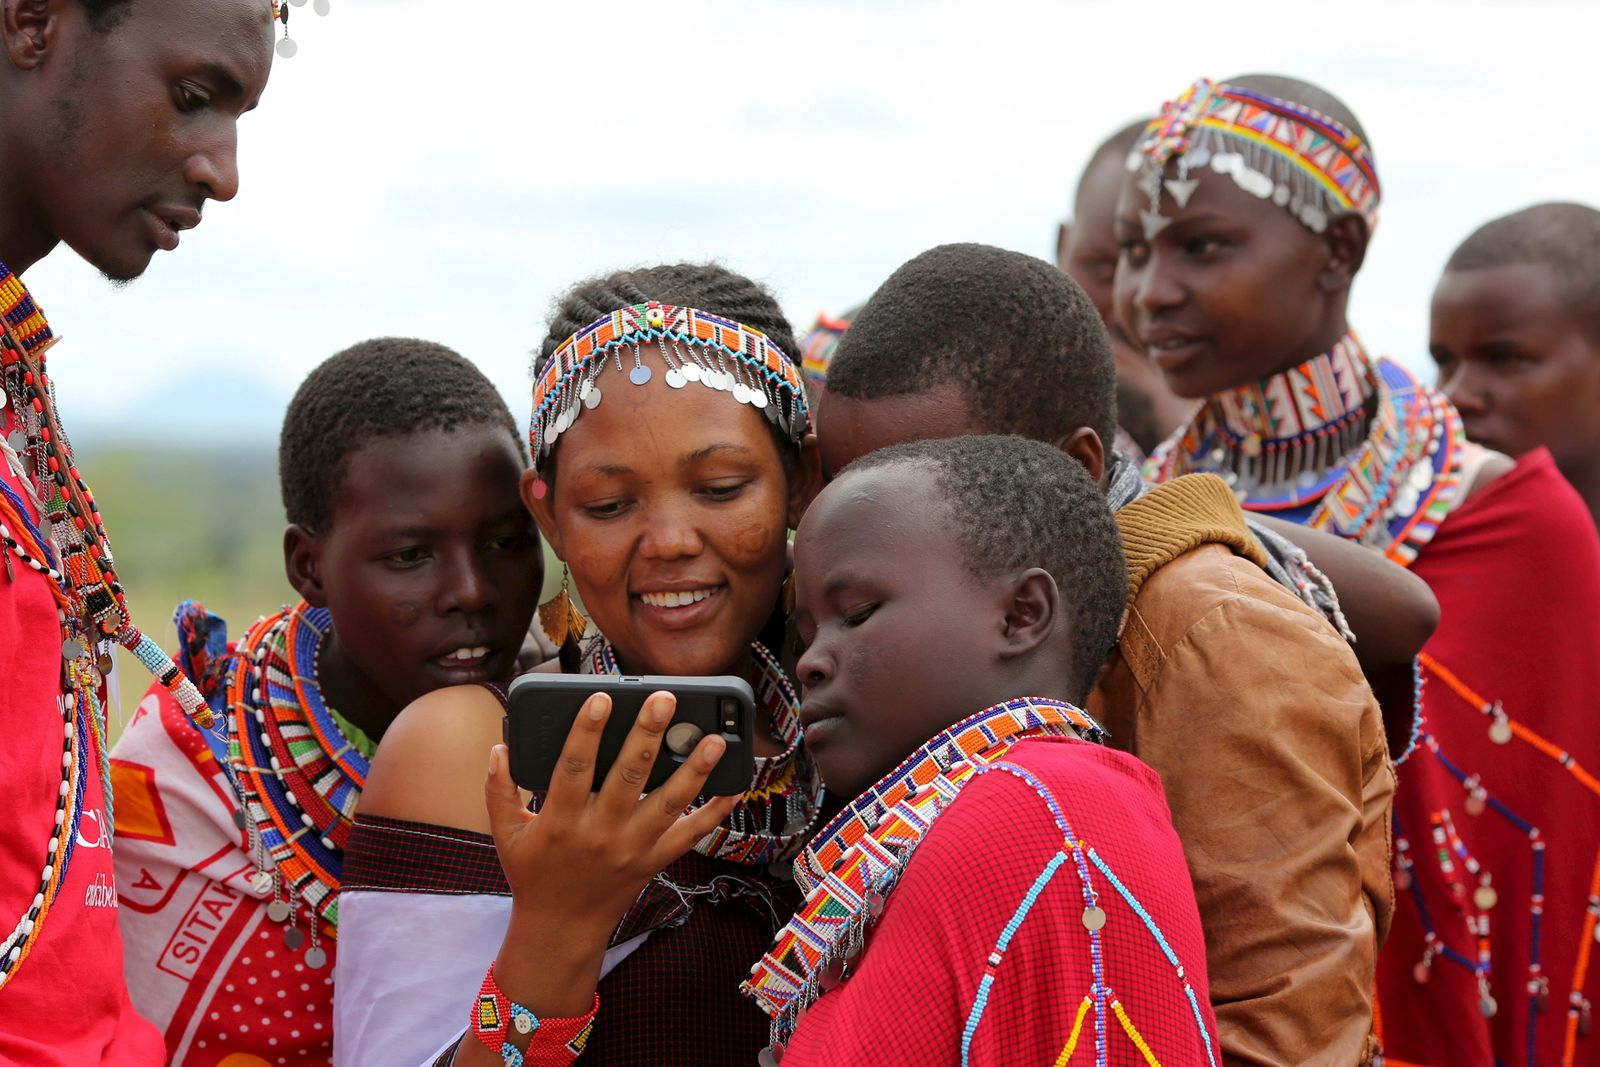 Maasai girls and a man watch a video on a mobile phone prior to the start of a social event advocating against harmful practices such as Female Genital Mutilation (FGM) at the Imbirikani Girls High School in Imbirikani, Kenya